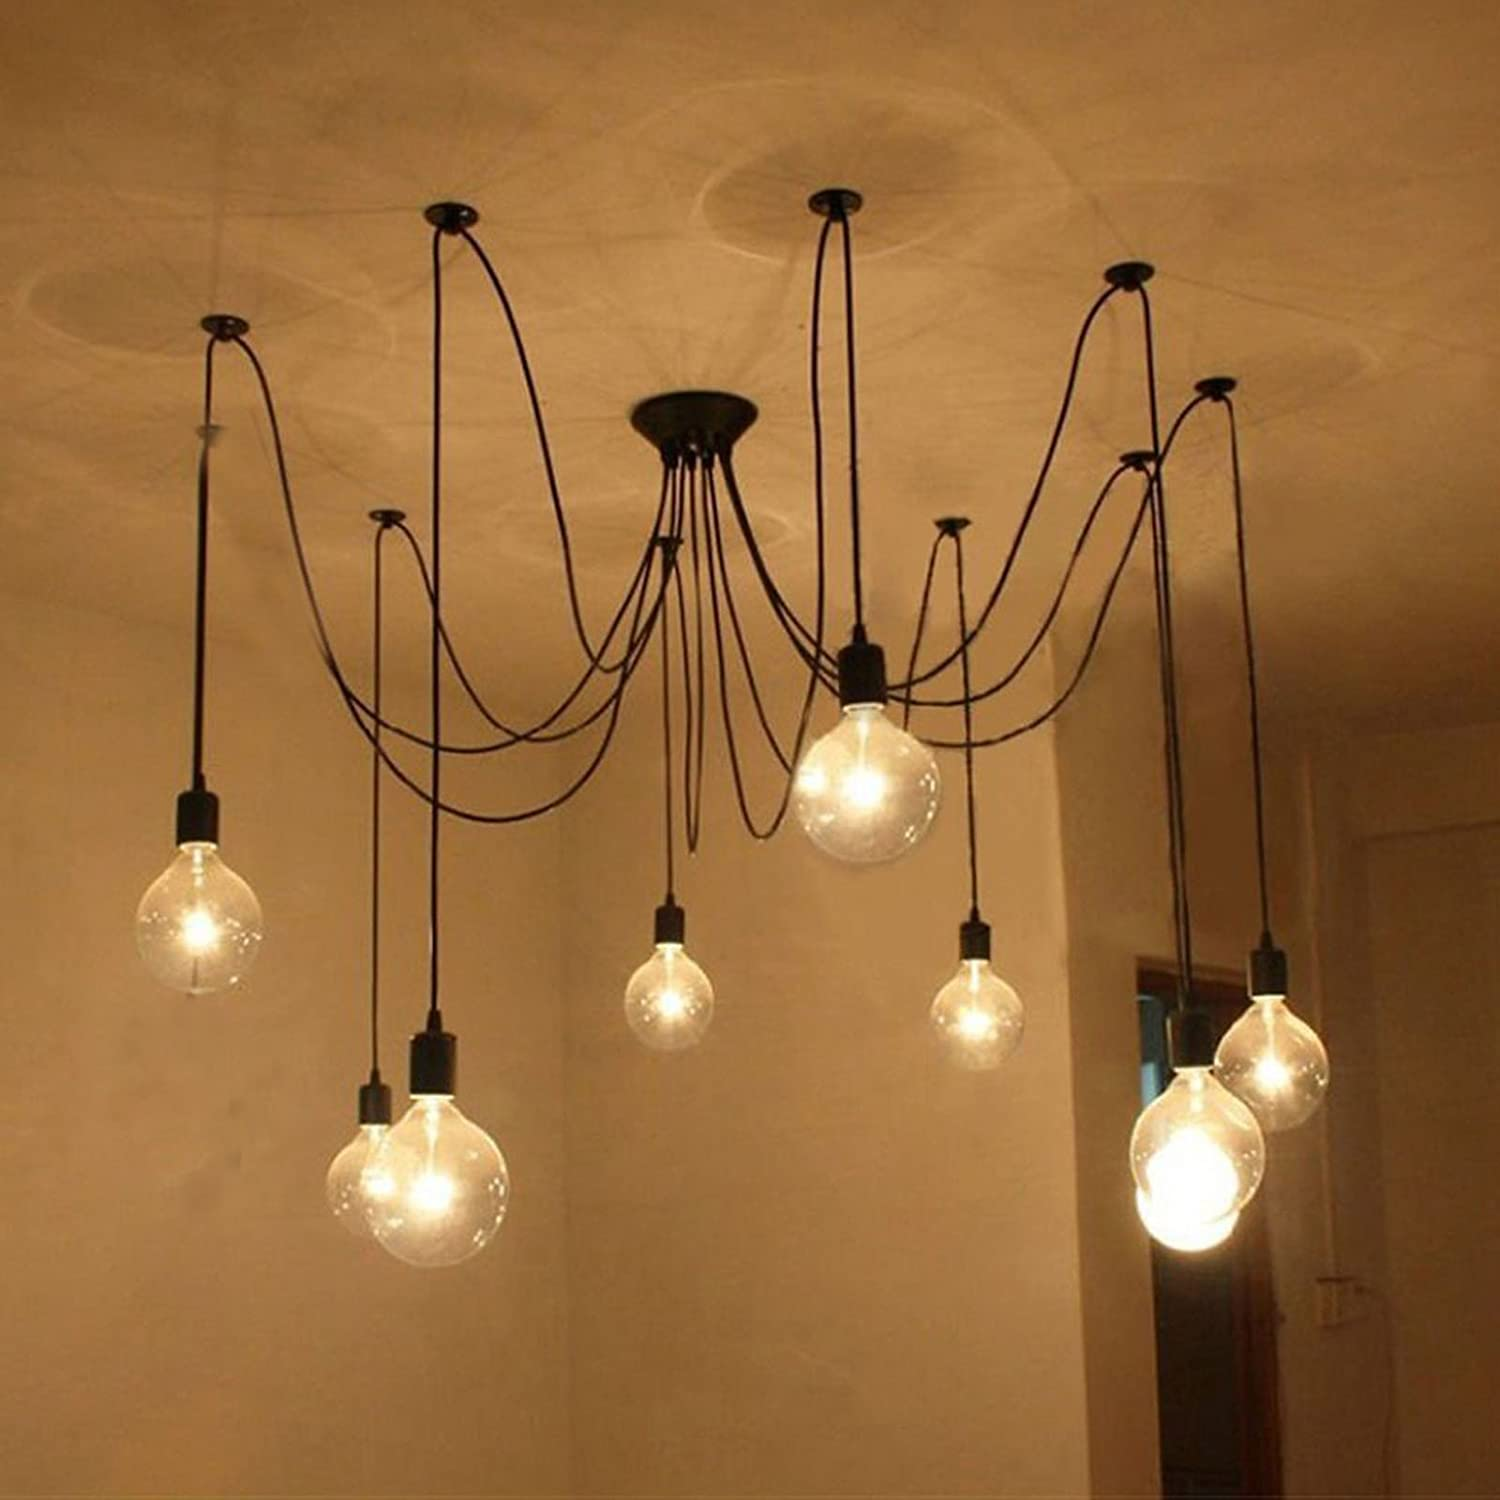 ceiling edison lamp goods flush lighting fixture industrial the mount collections bulb products with cage light lights